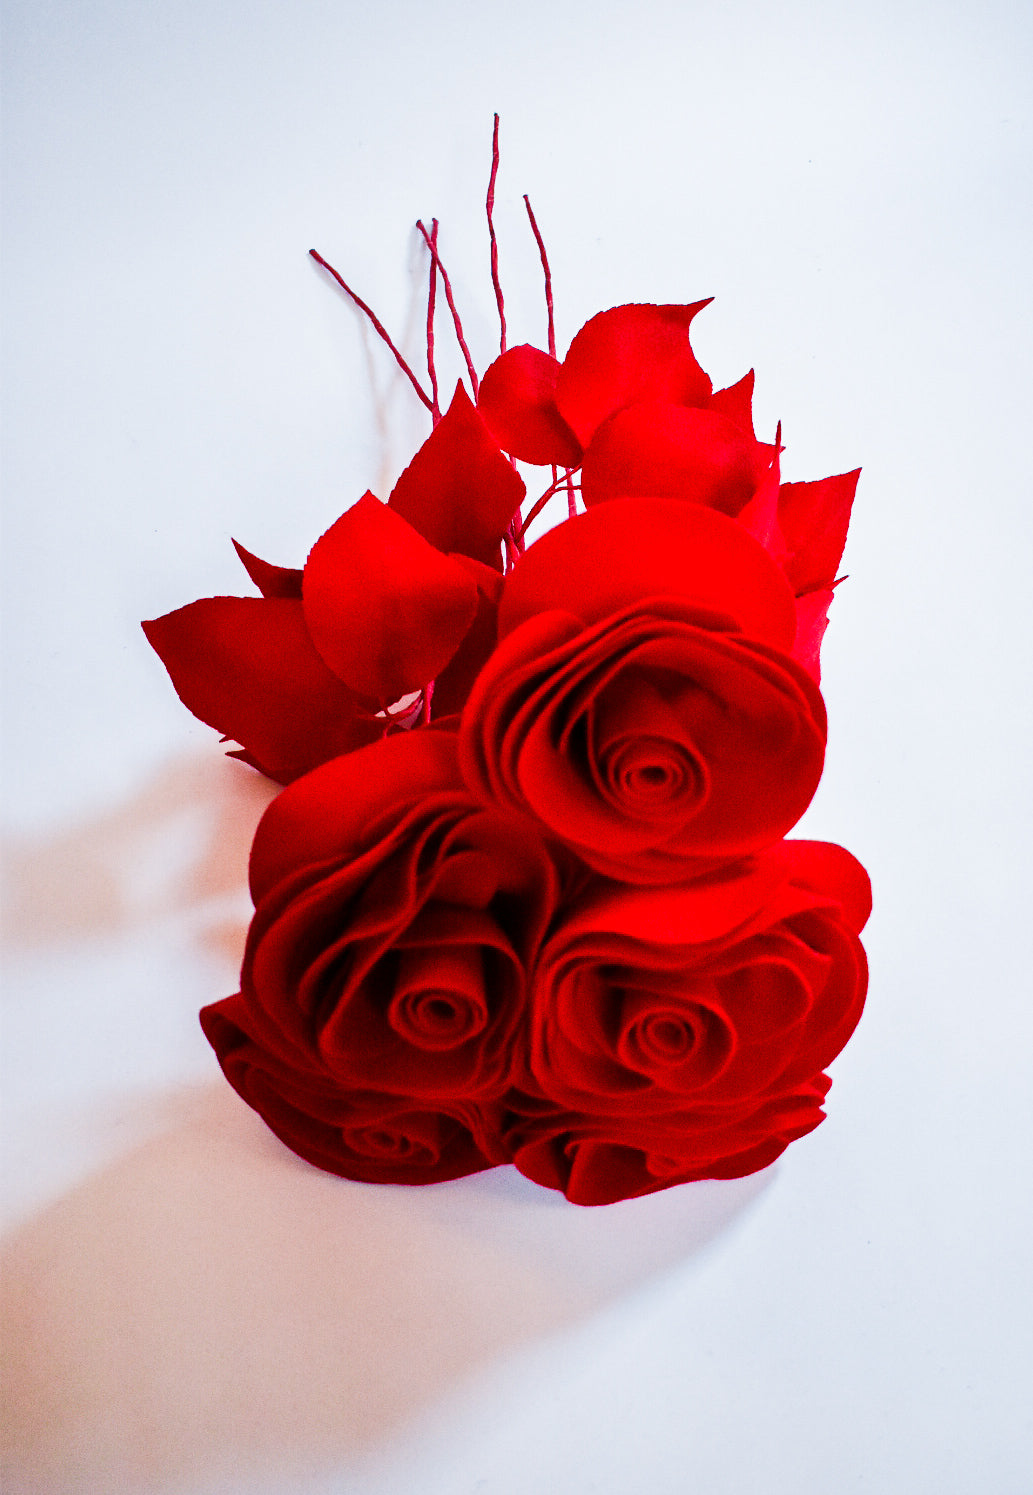 roses, rose bouquet, red rose bouquet, red roses, art, flowers, gift, anniversary gift, bunch of roses, bunch of flowers